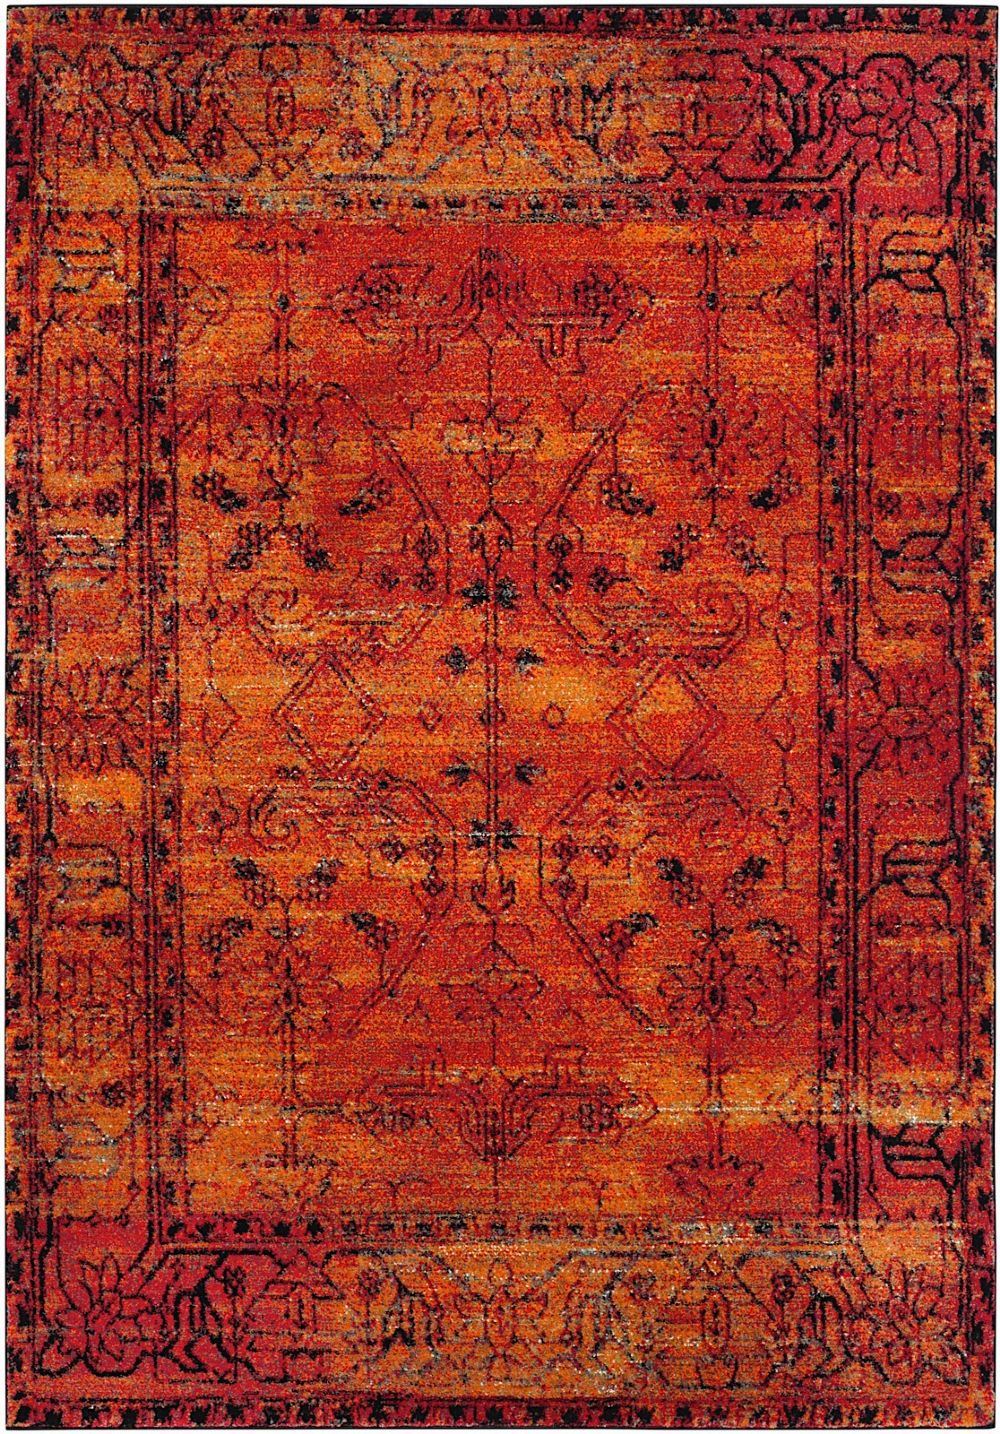 Safavieh Vintage Hamadan Traditional Area Rug Collection